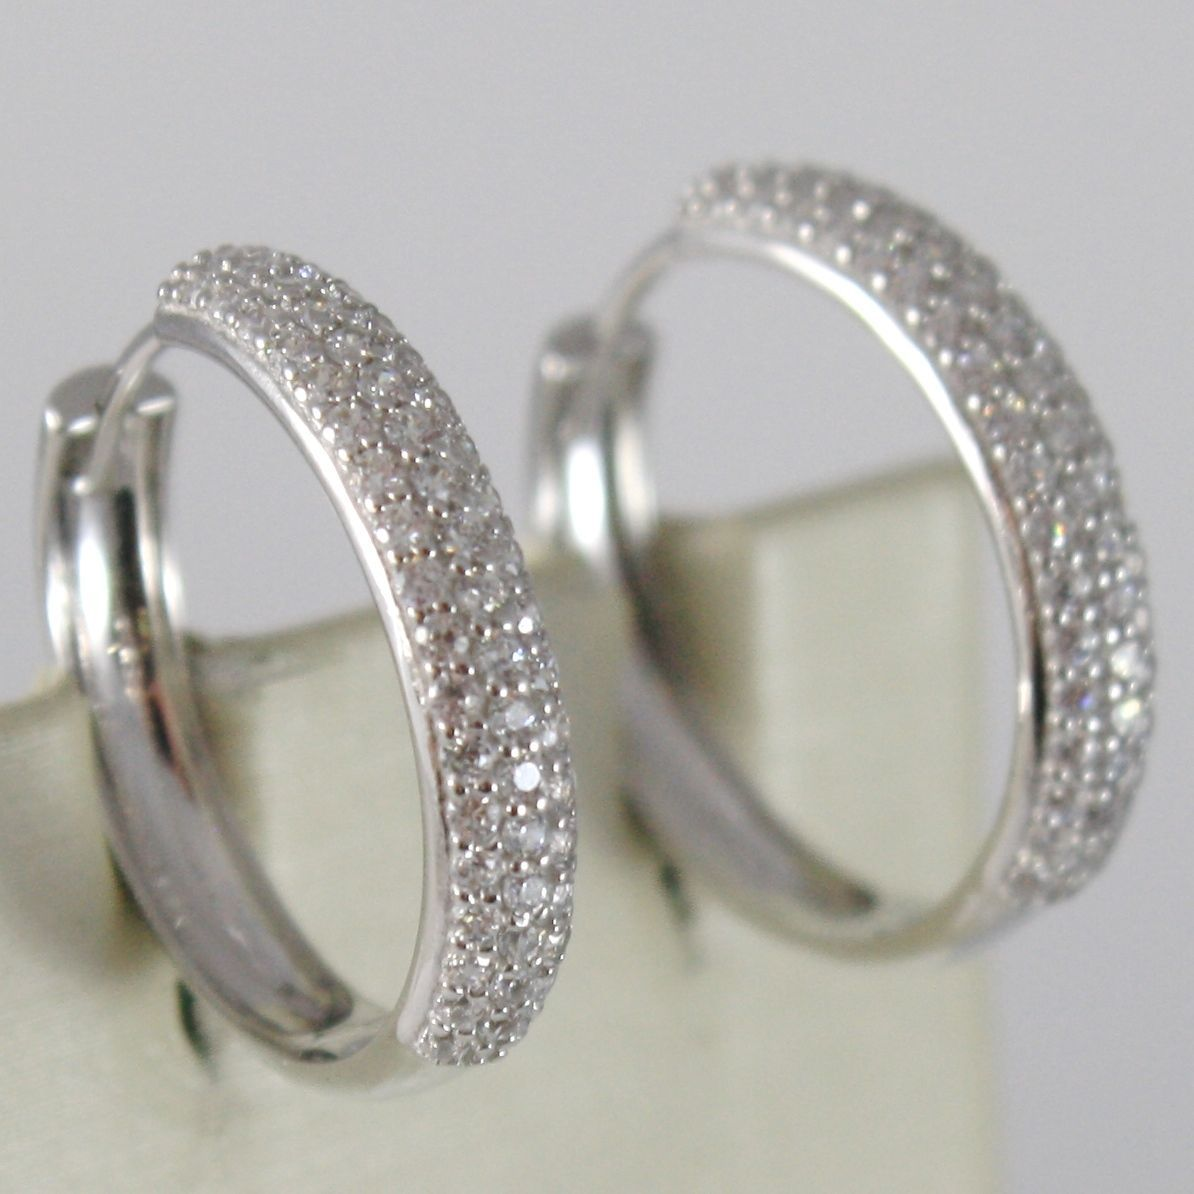 White Gold Earrings 750 18k circle, diameter 2 CM, Triple Row Zirconia, 3 MM